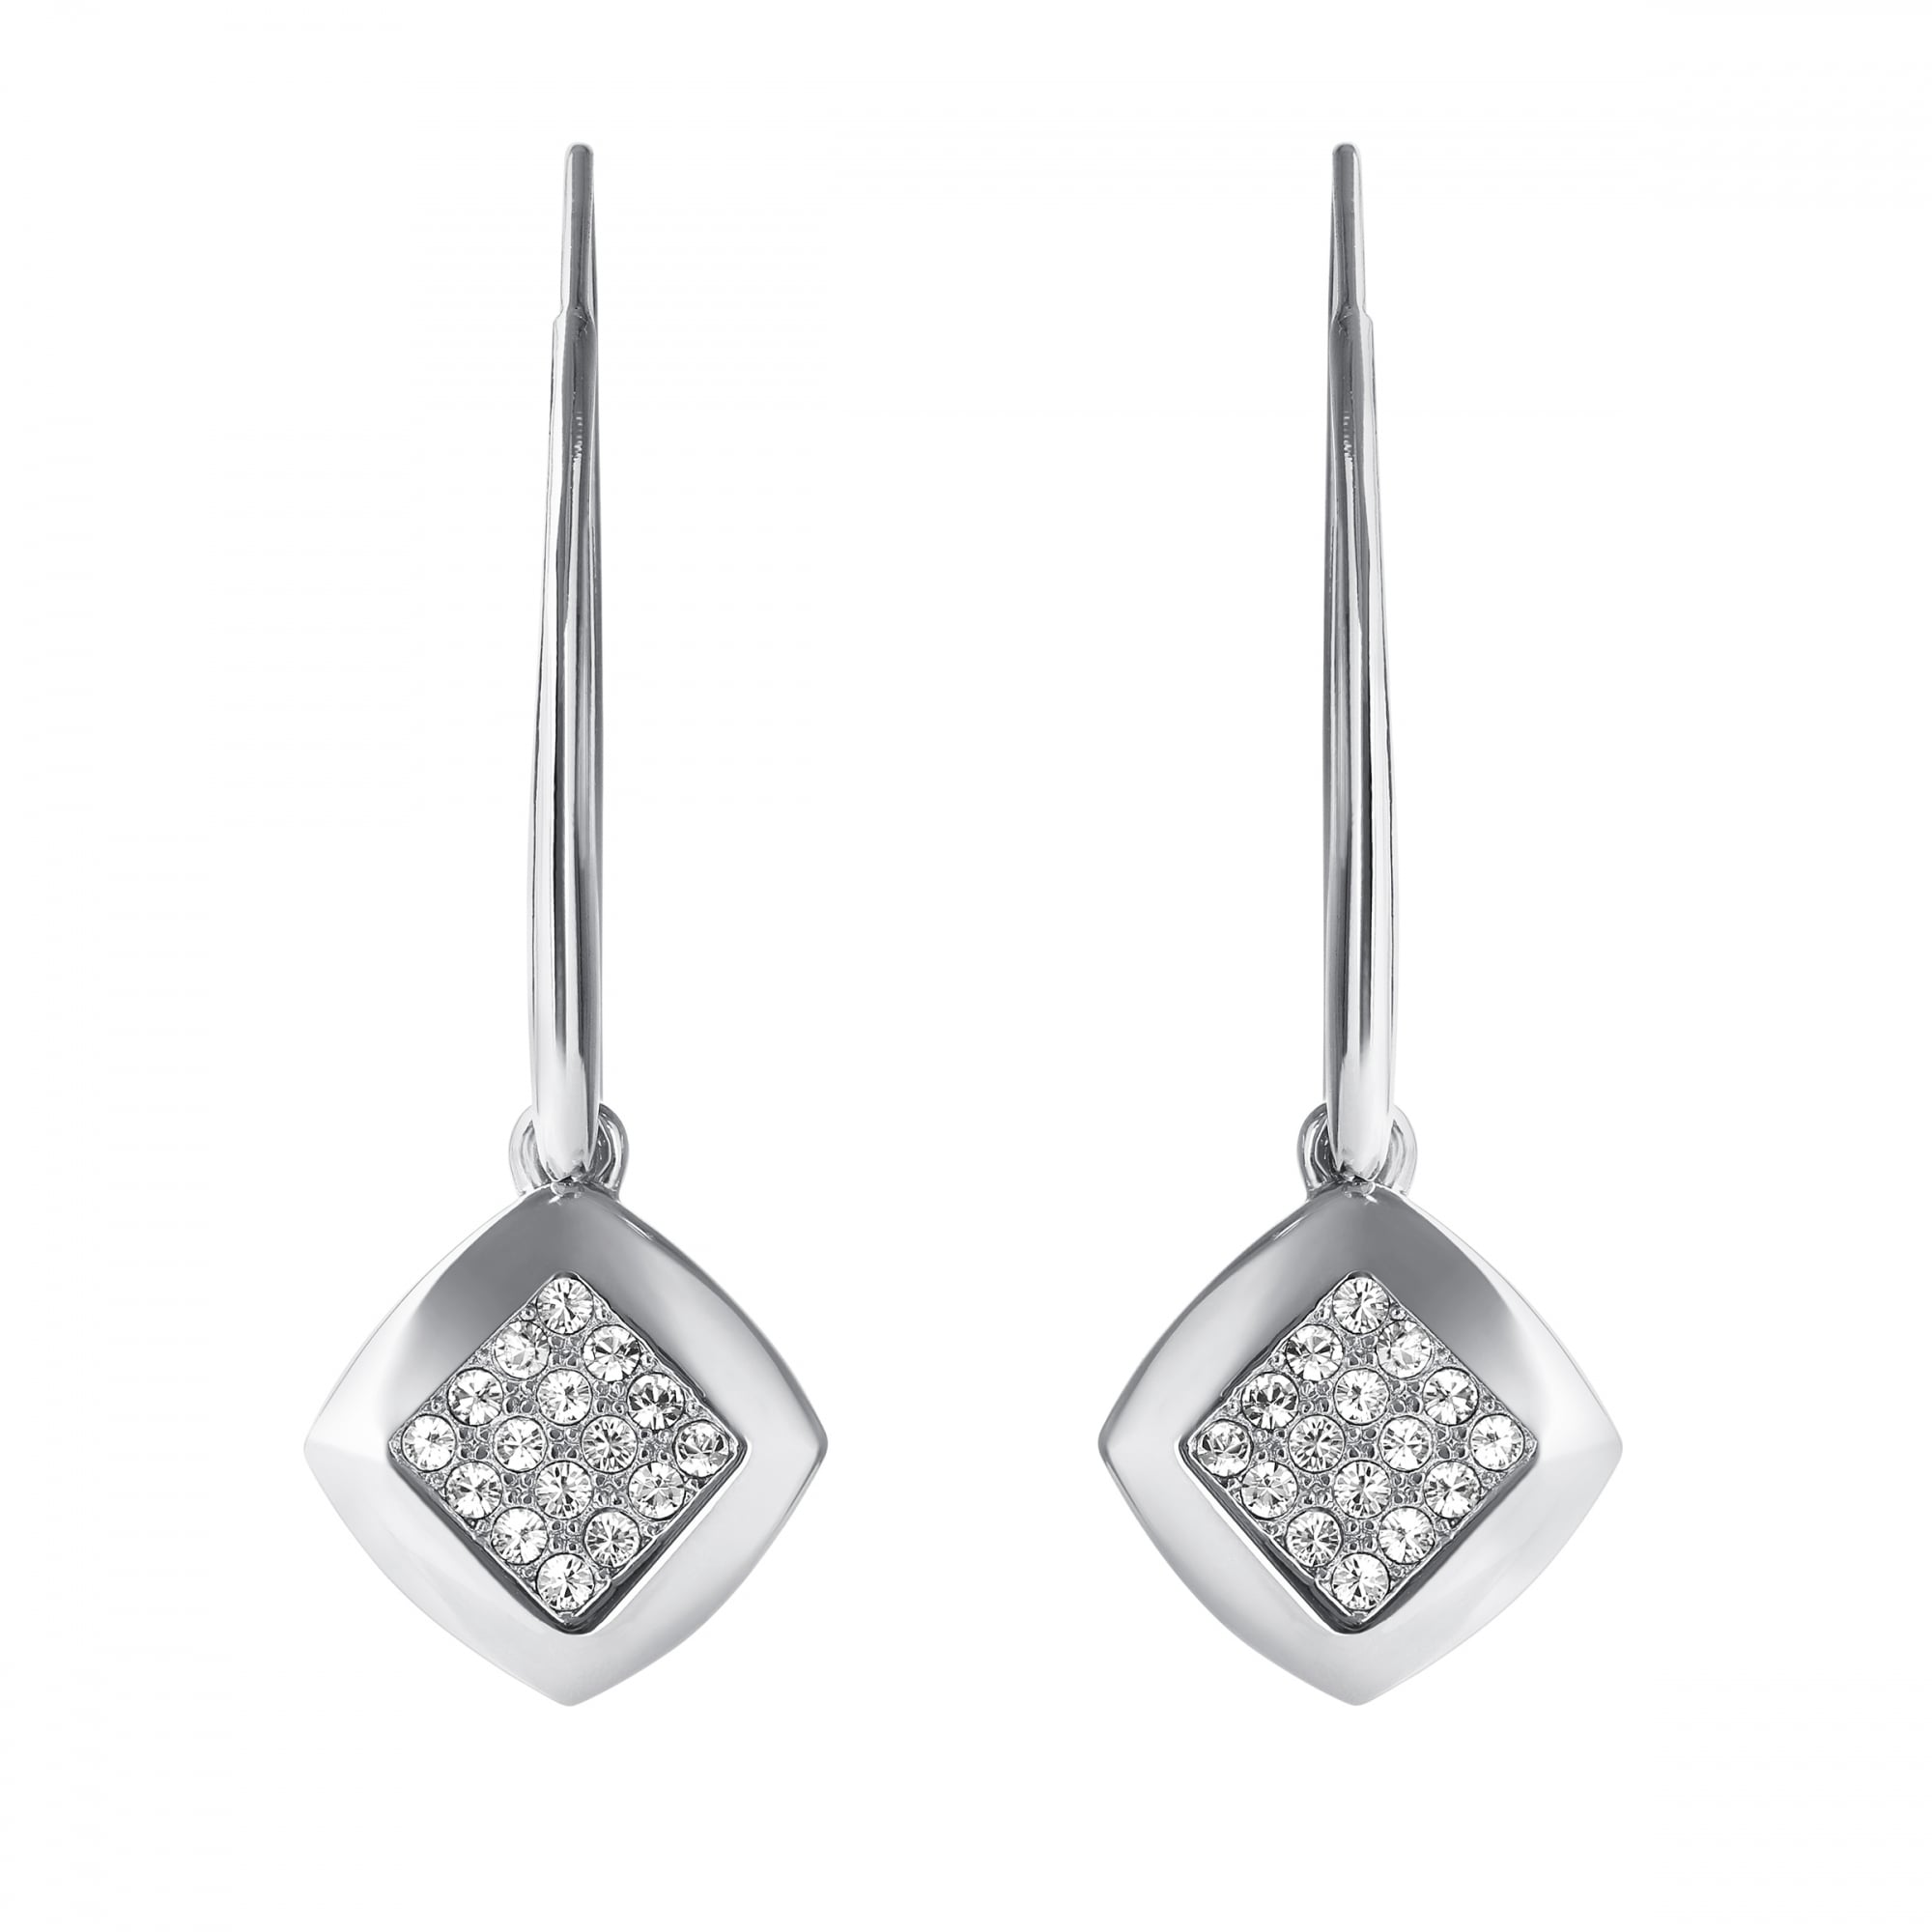 Silver Pave Square Drop Earring Created With Swarovski Crystals